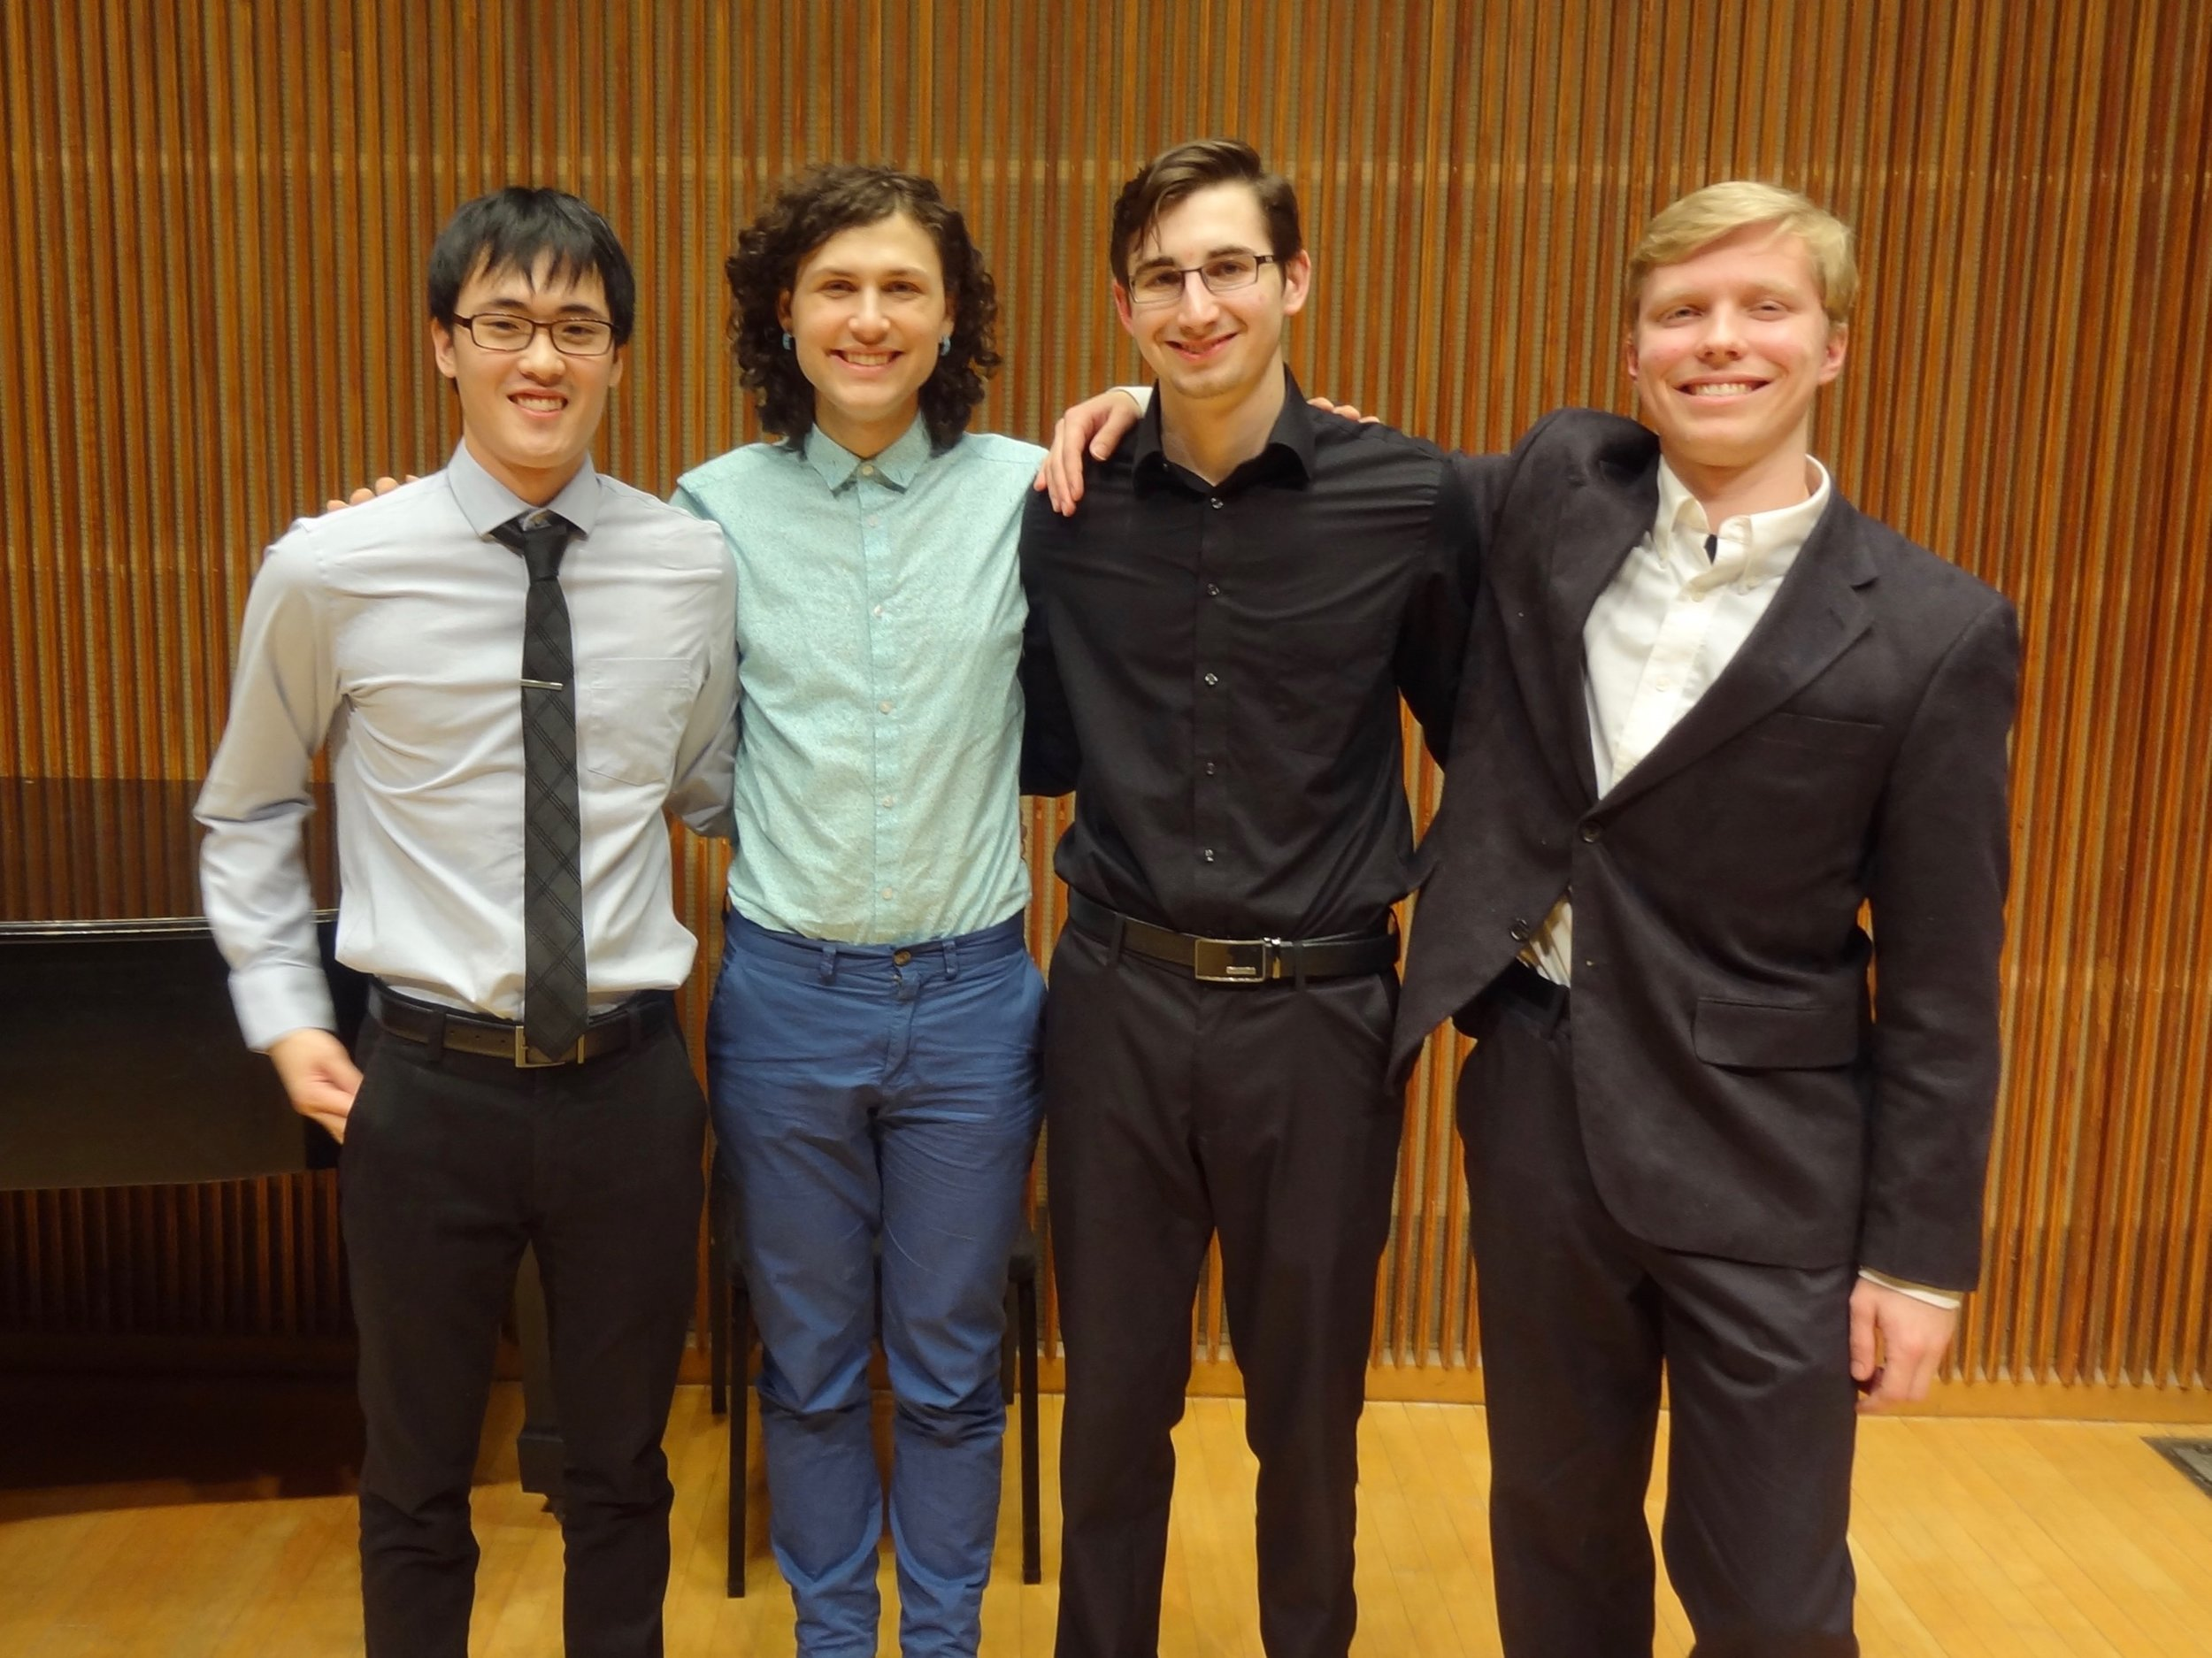 THE WINNERS: Yeram Yoon, Julia Humphrey, Adam Sutorius and Aidan Wiley Lippke